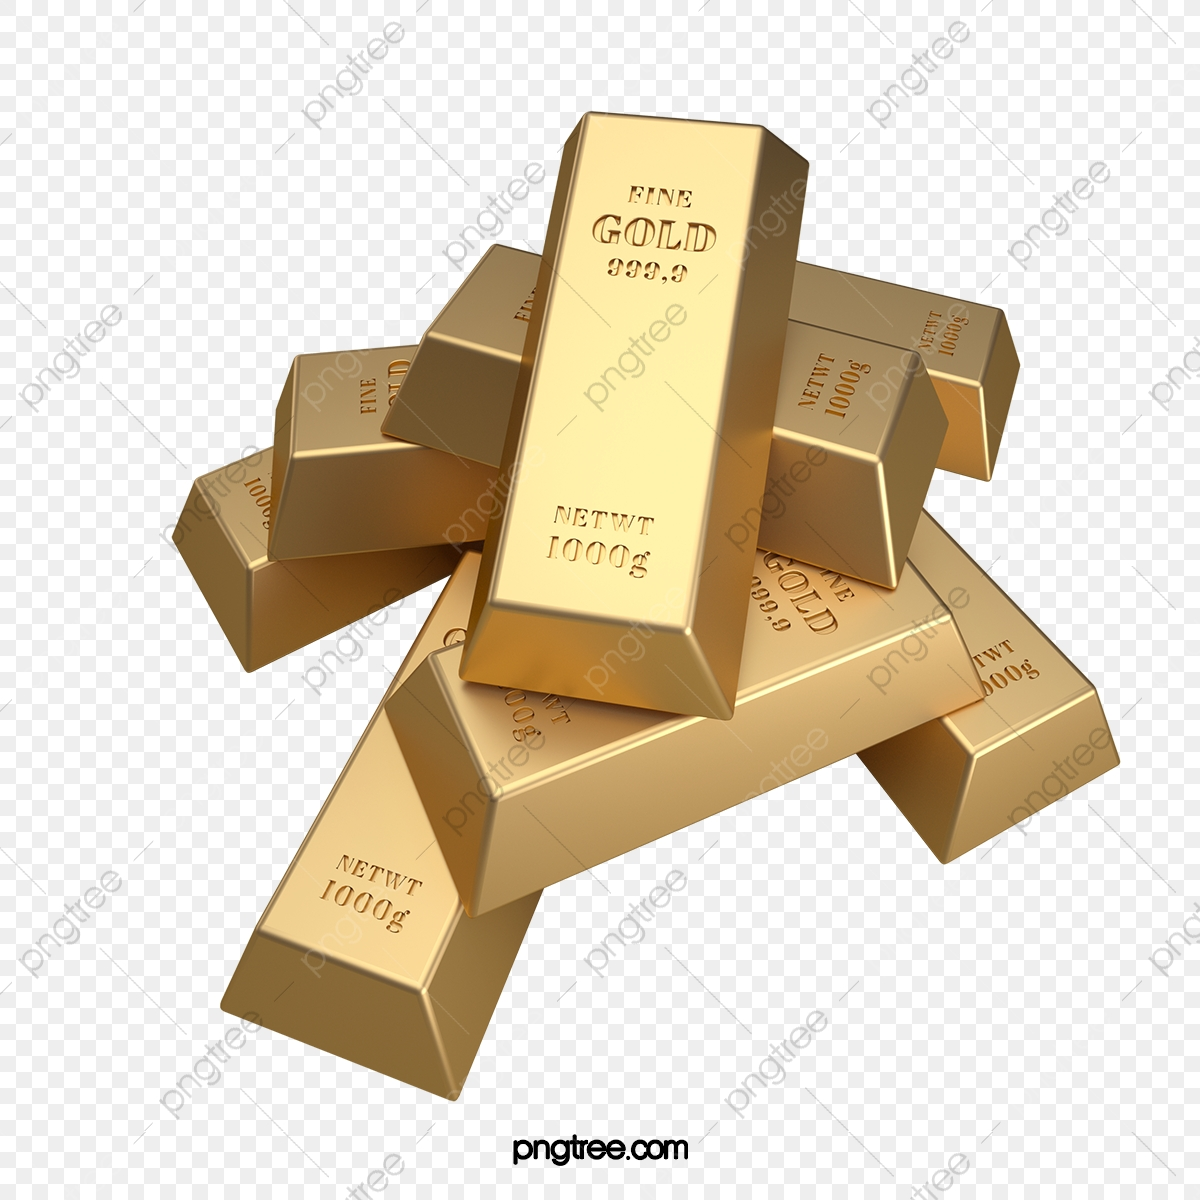 Gold Bar Png Vector Psd And Clipart With Transparent Background For Free Download Pngtree